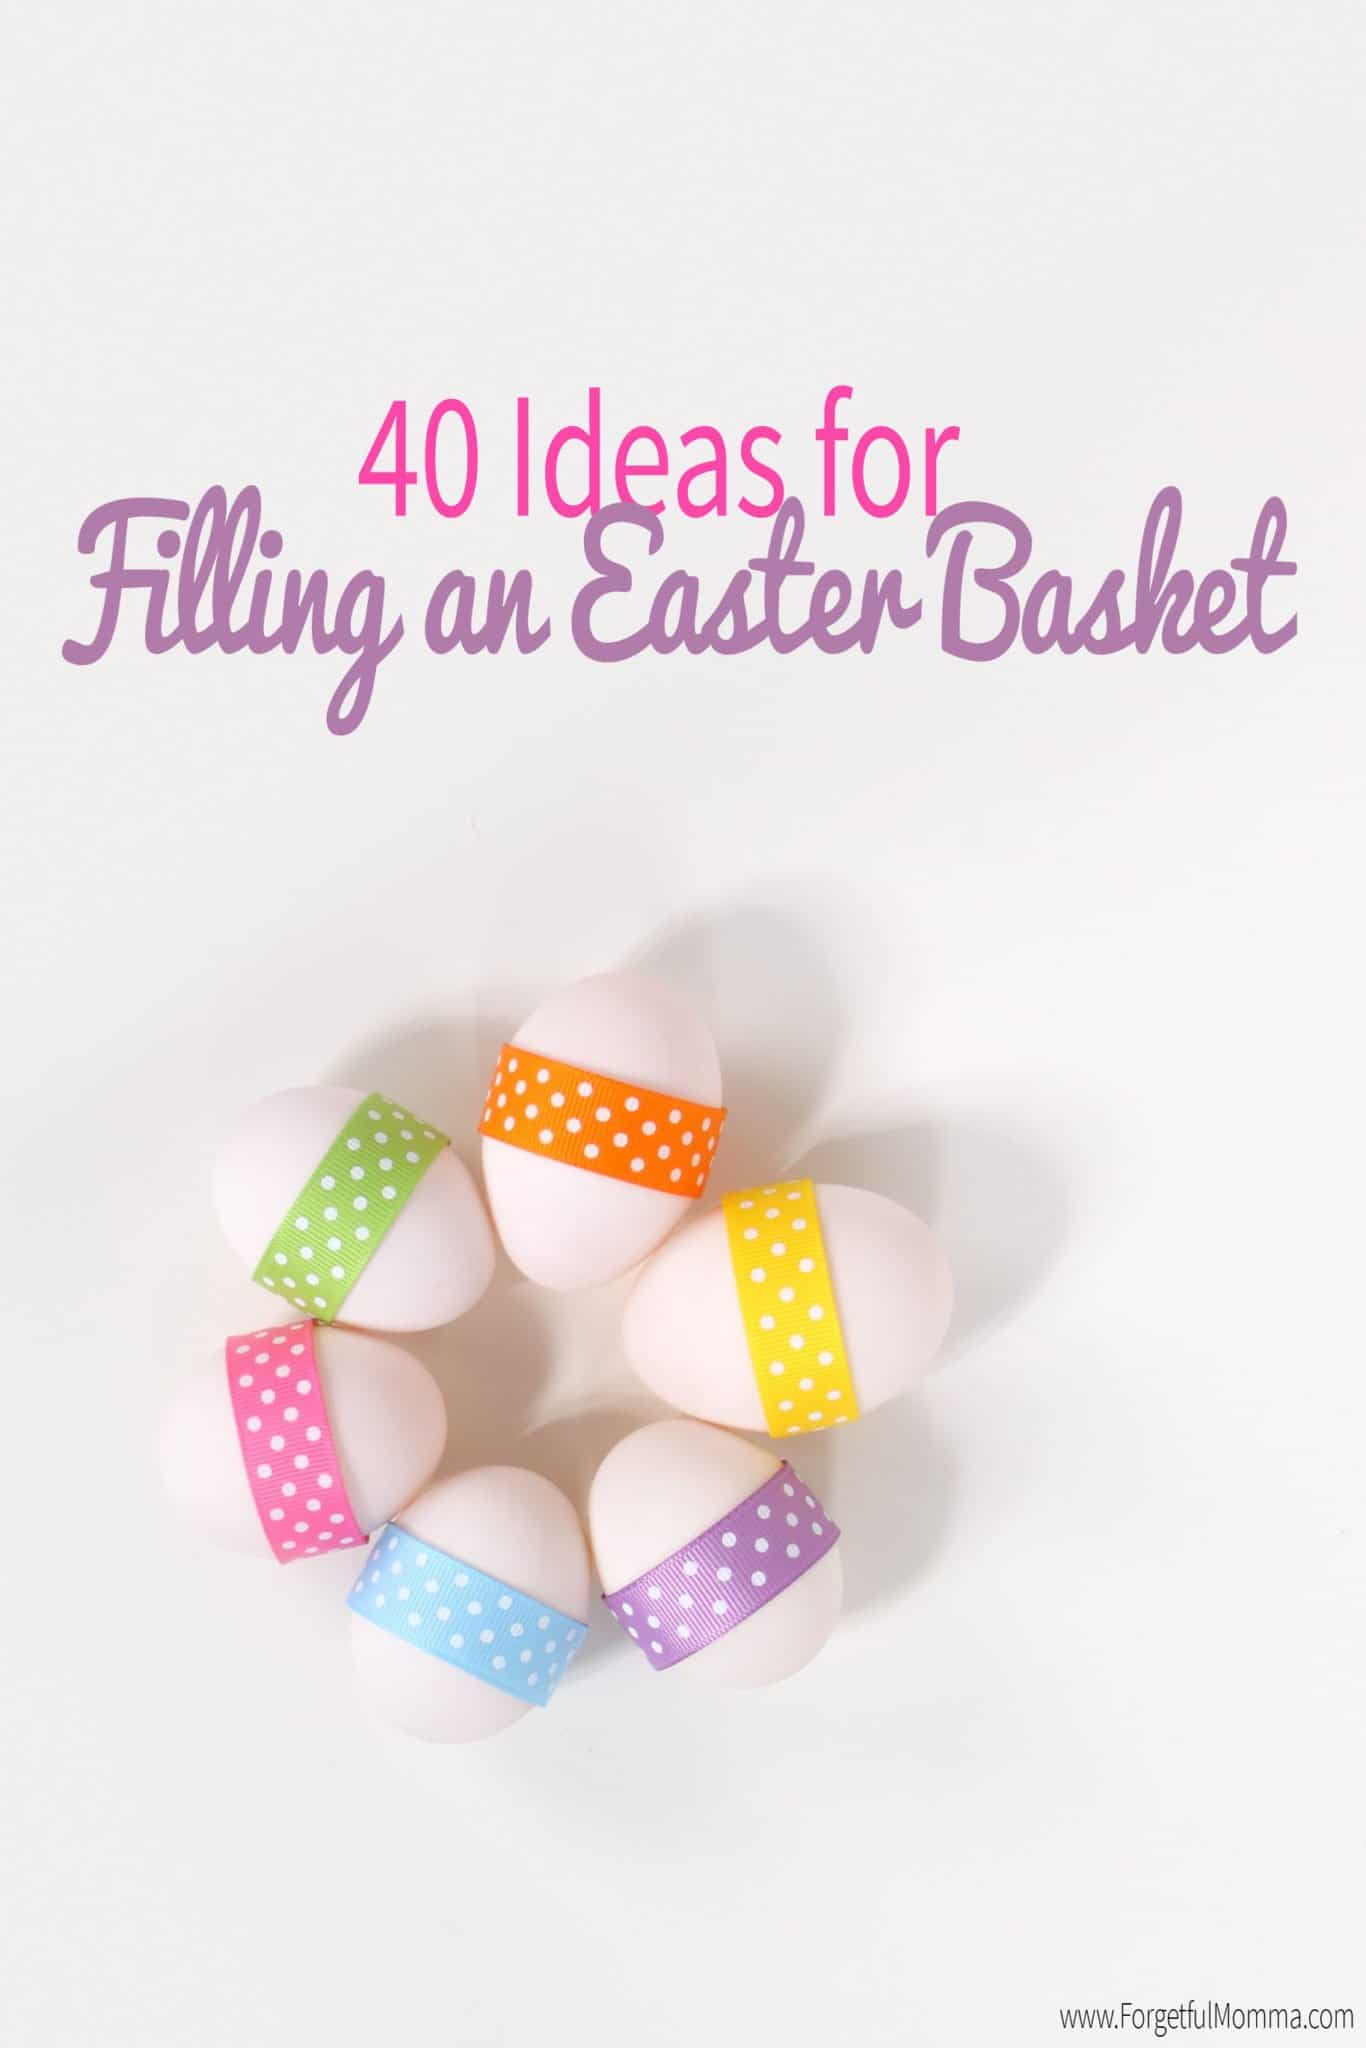 40 Ideas for Filling an Easter Basket